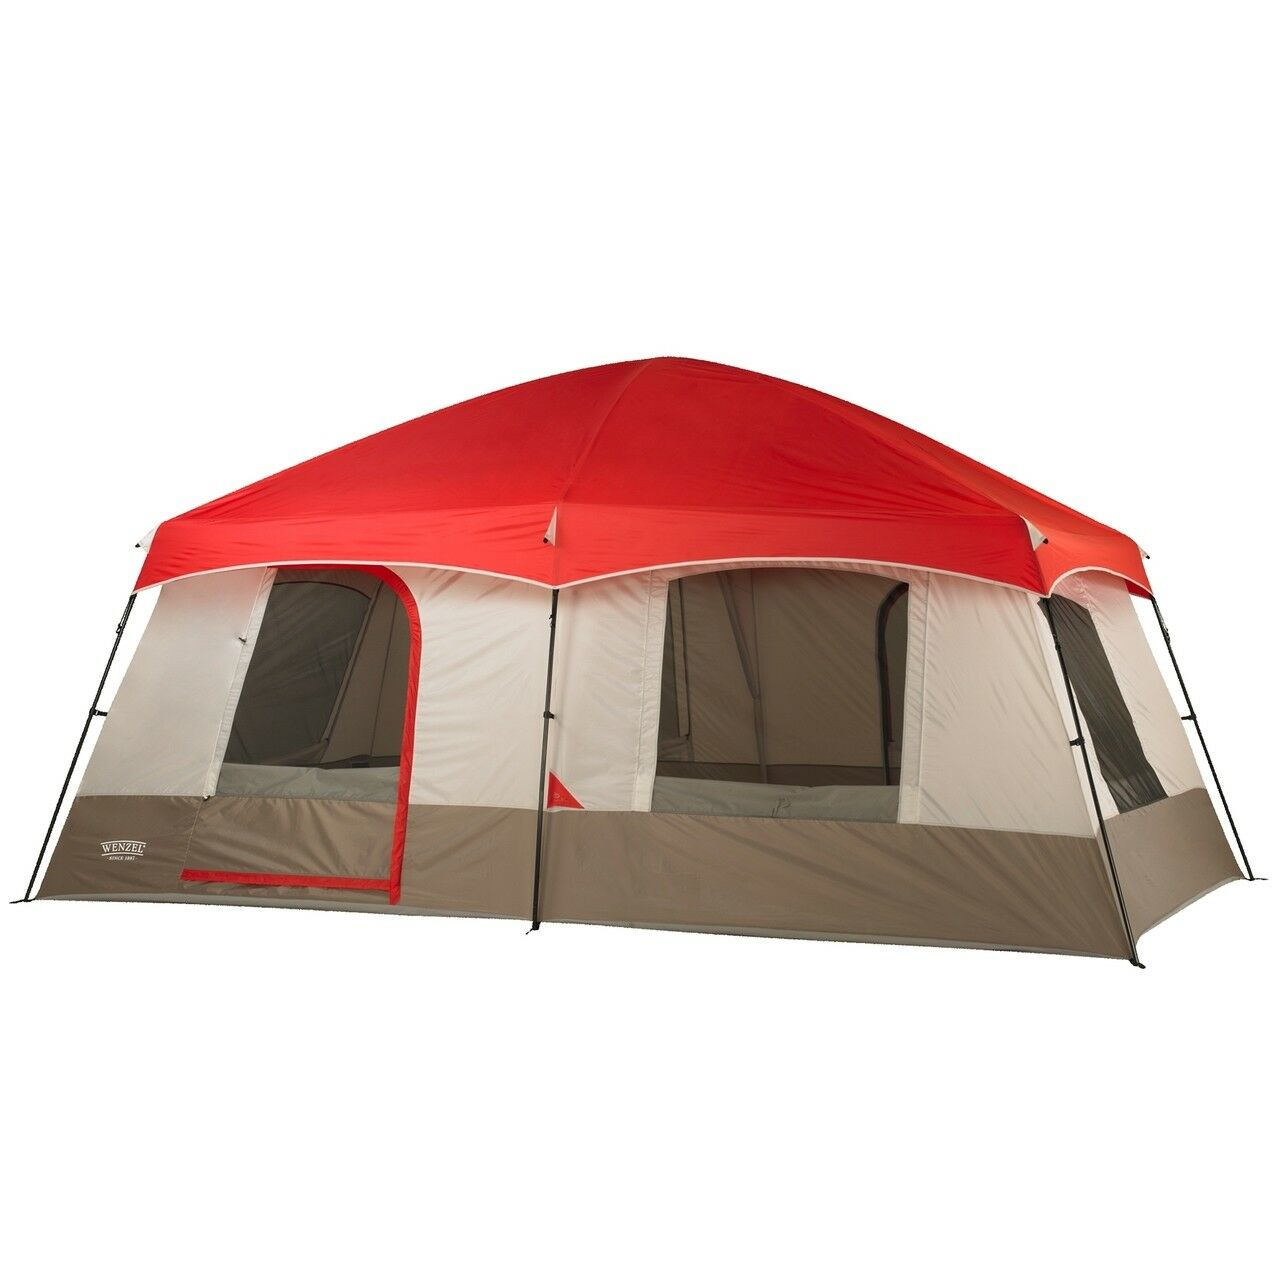 Timber Ridge 10 person tent creates a home away from home w  2 room walk in